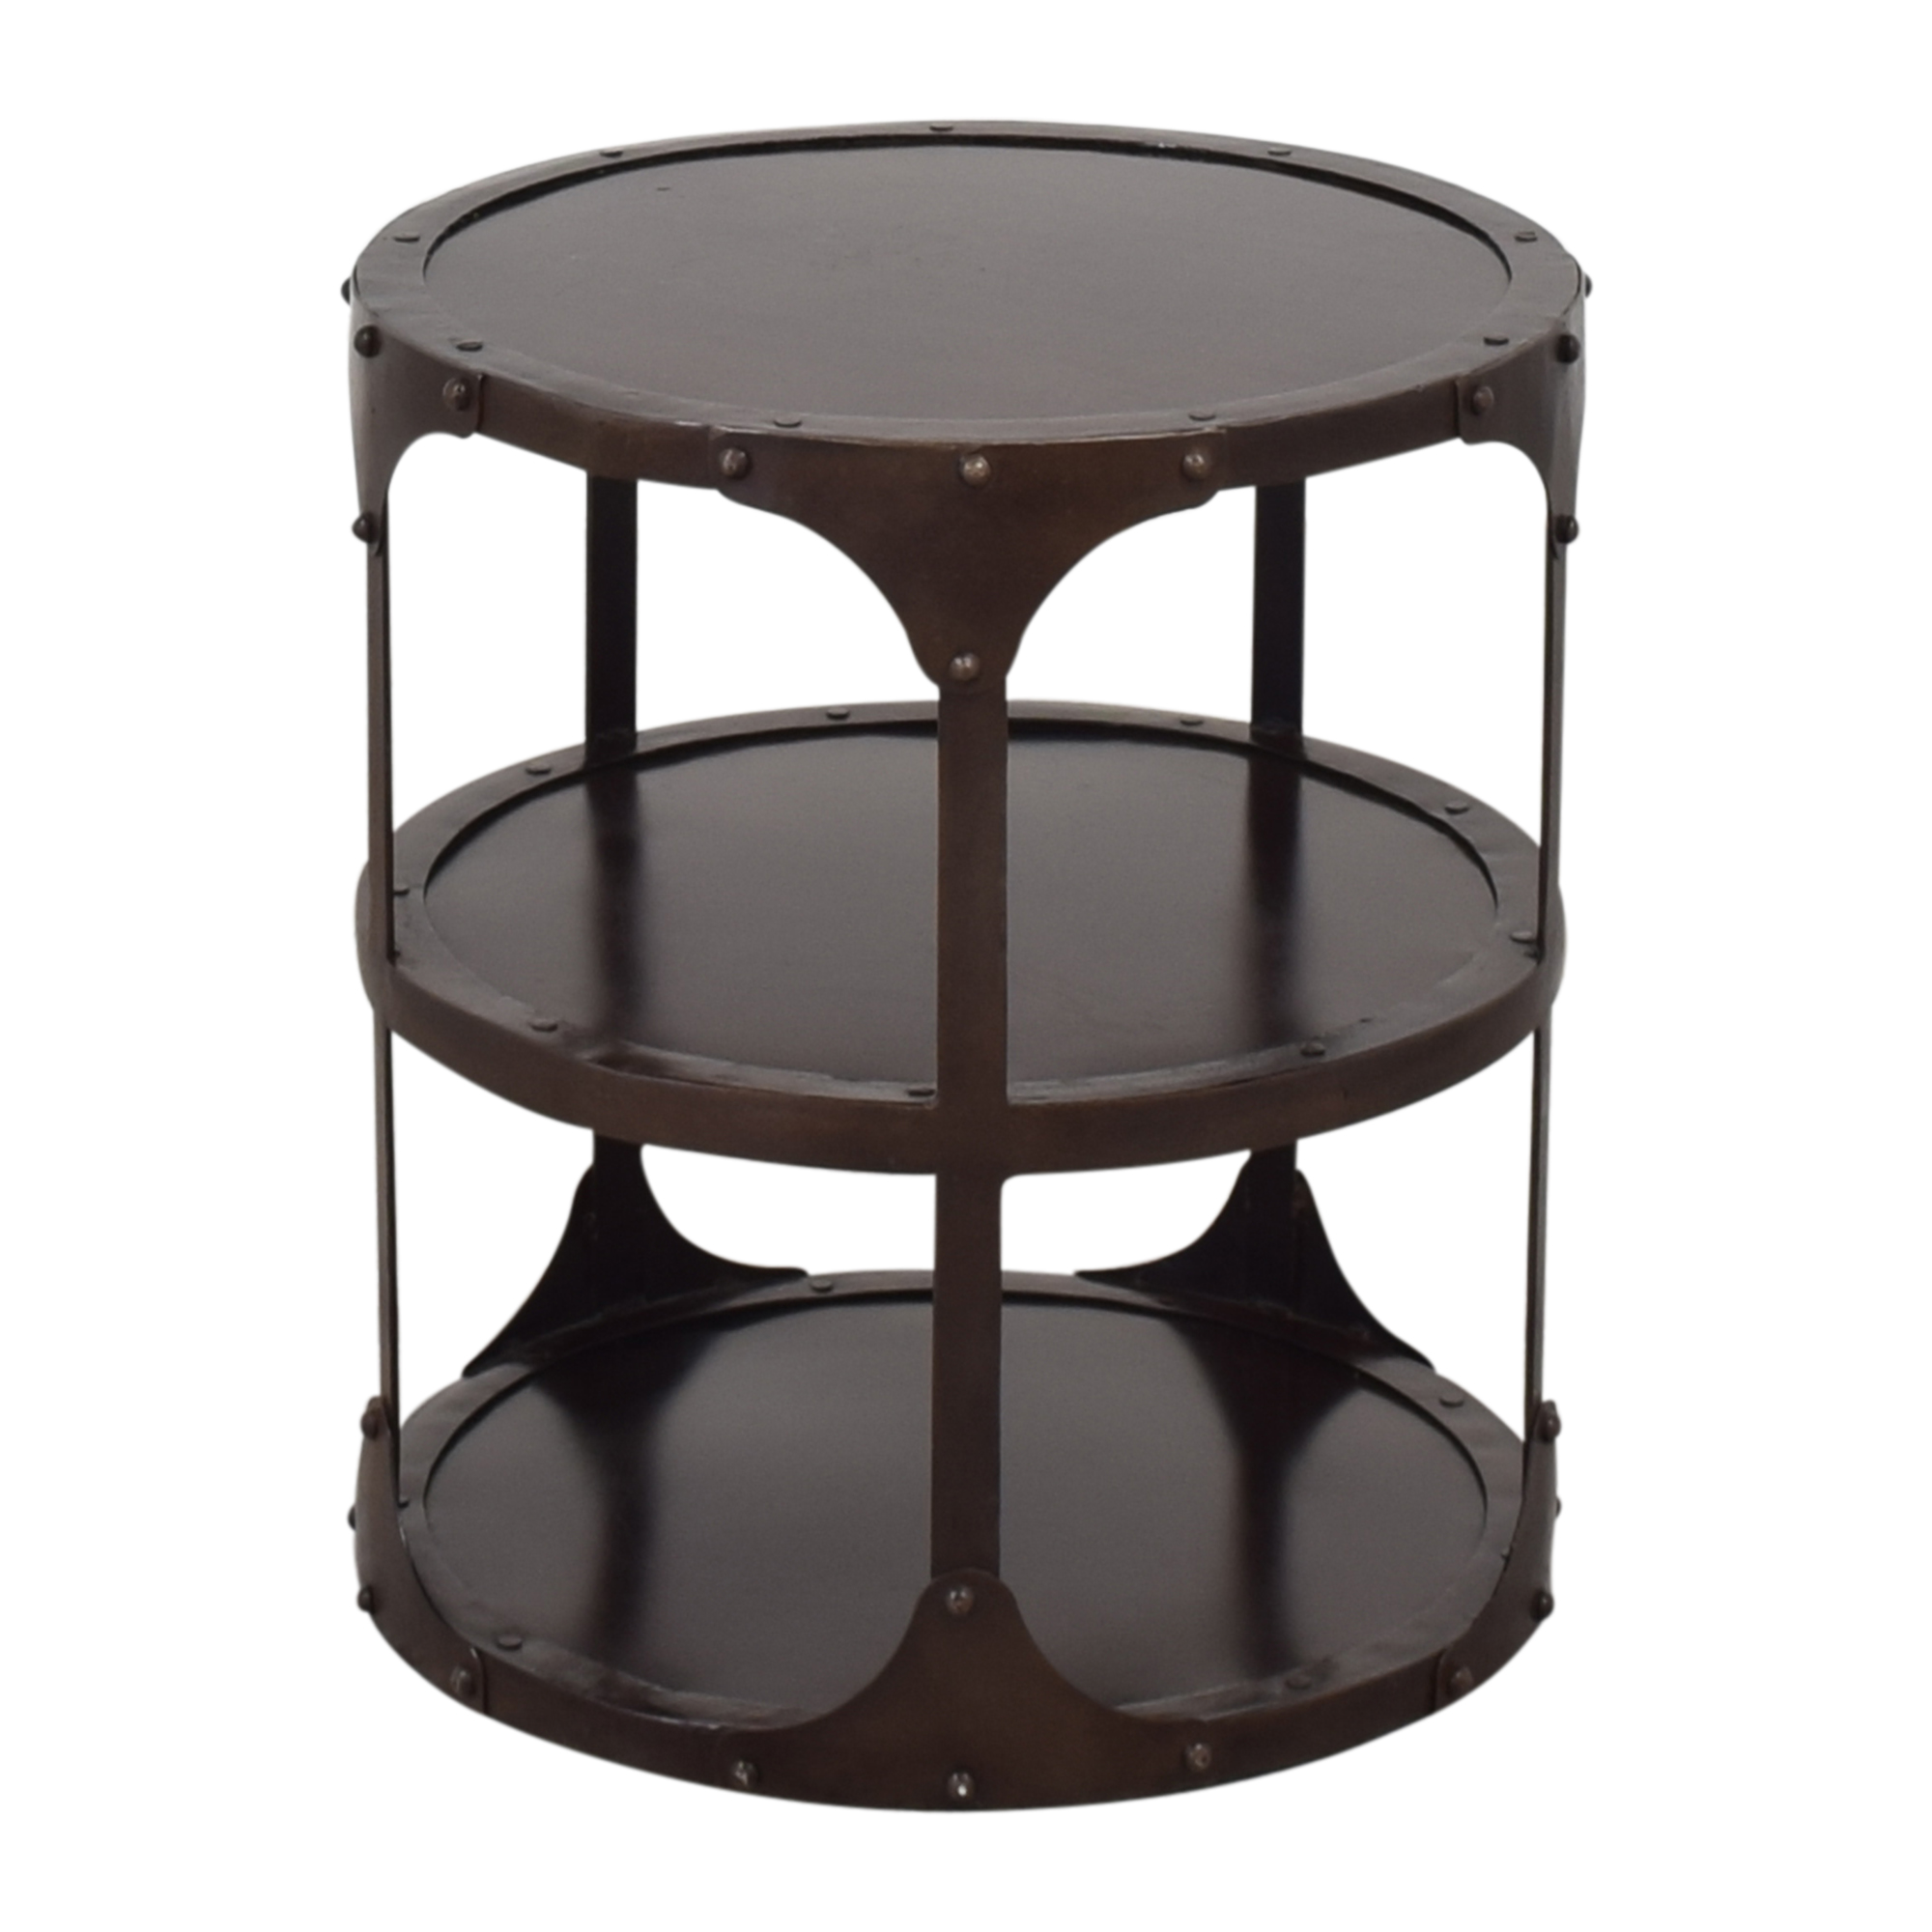 Restoration Hardware Restoration Hardware Metal Bombay Side Table dimensions